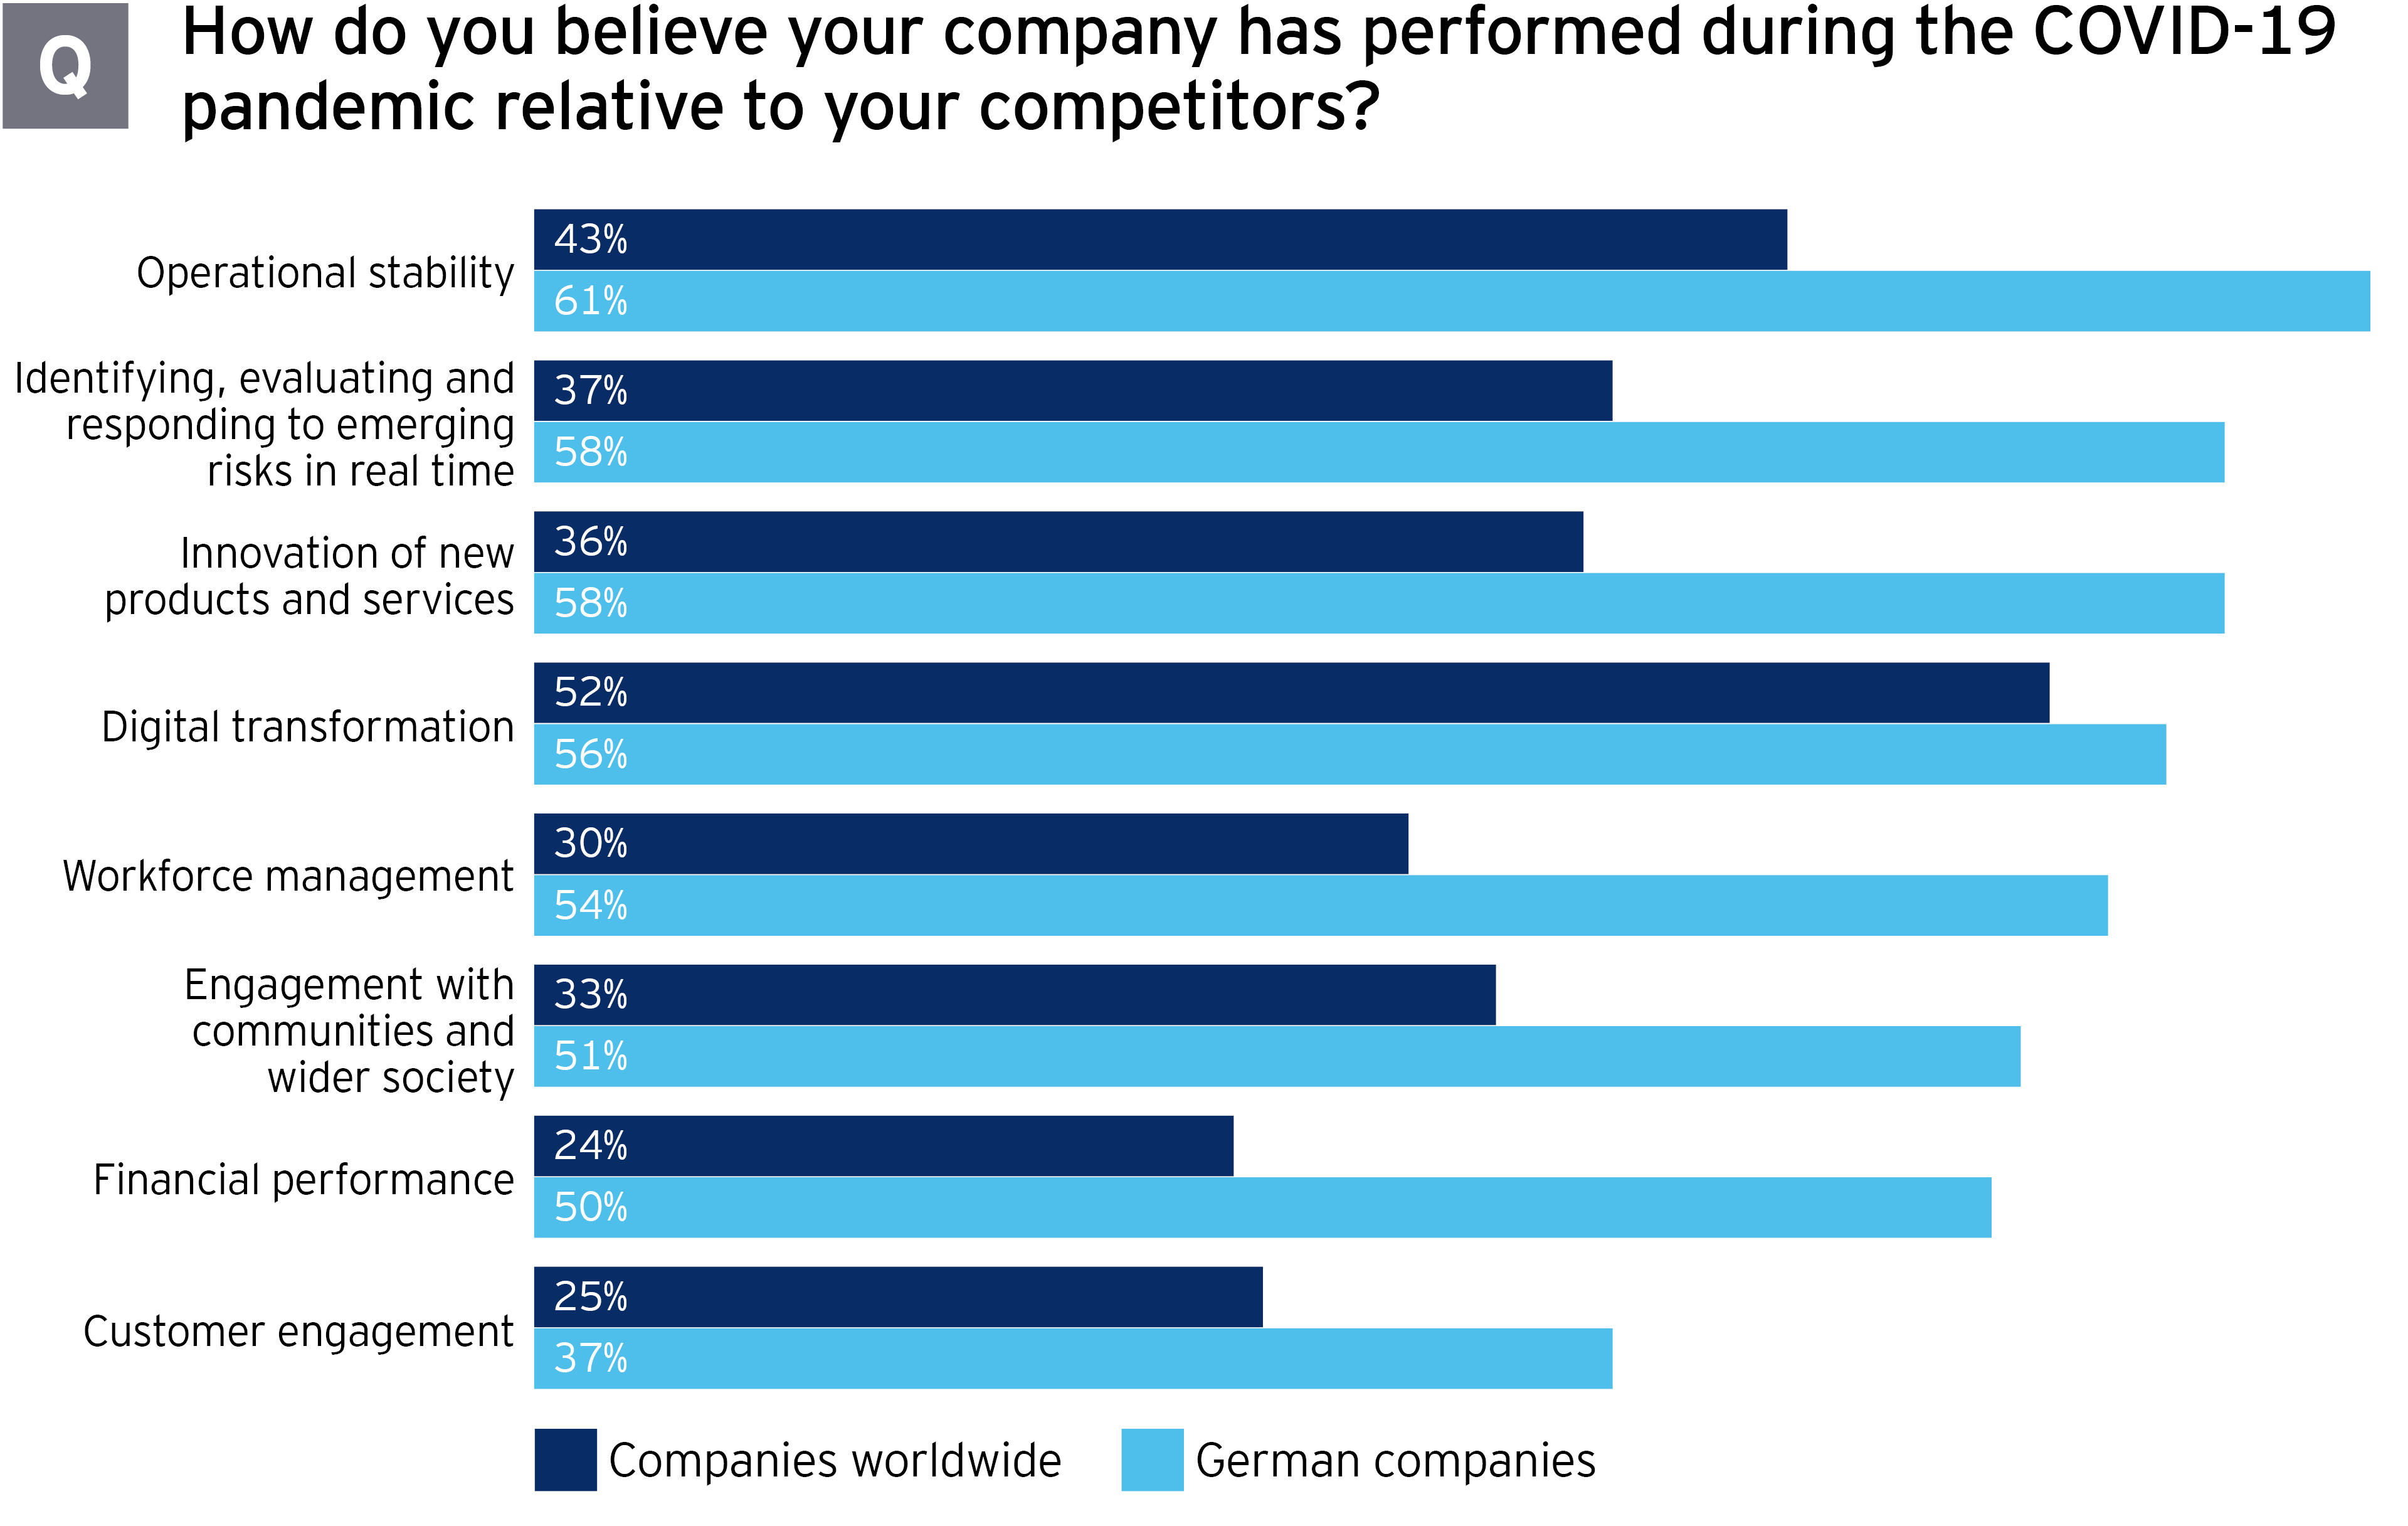 EY CCB23 Germany perceptions of company pandemic performance vs competitors